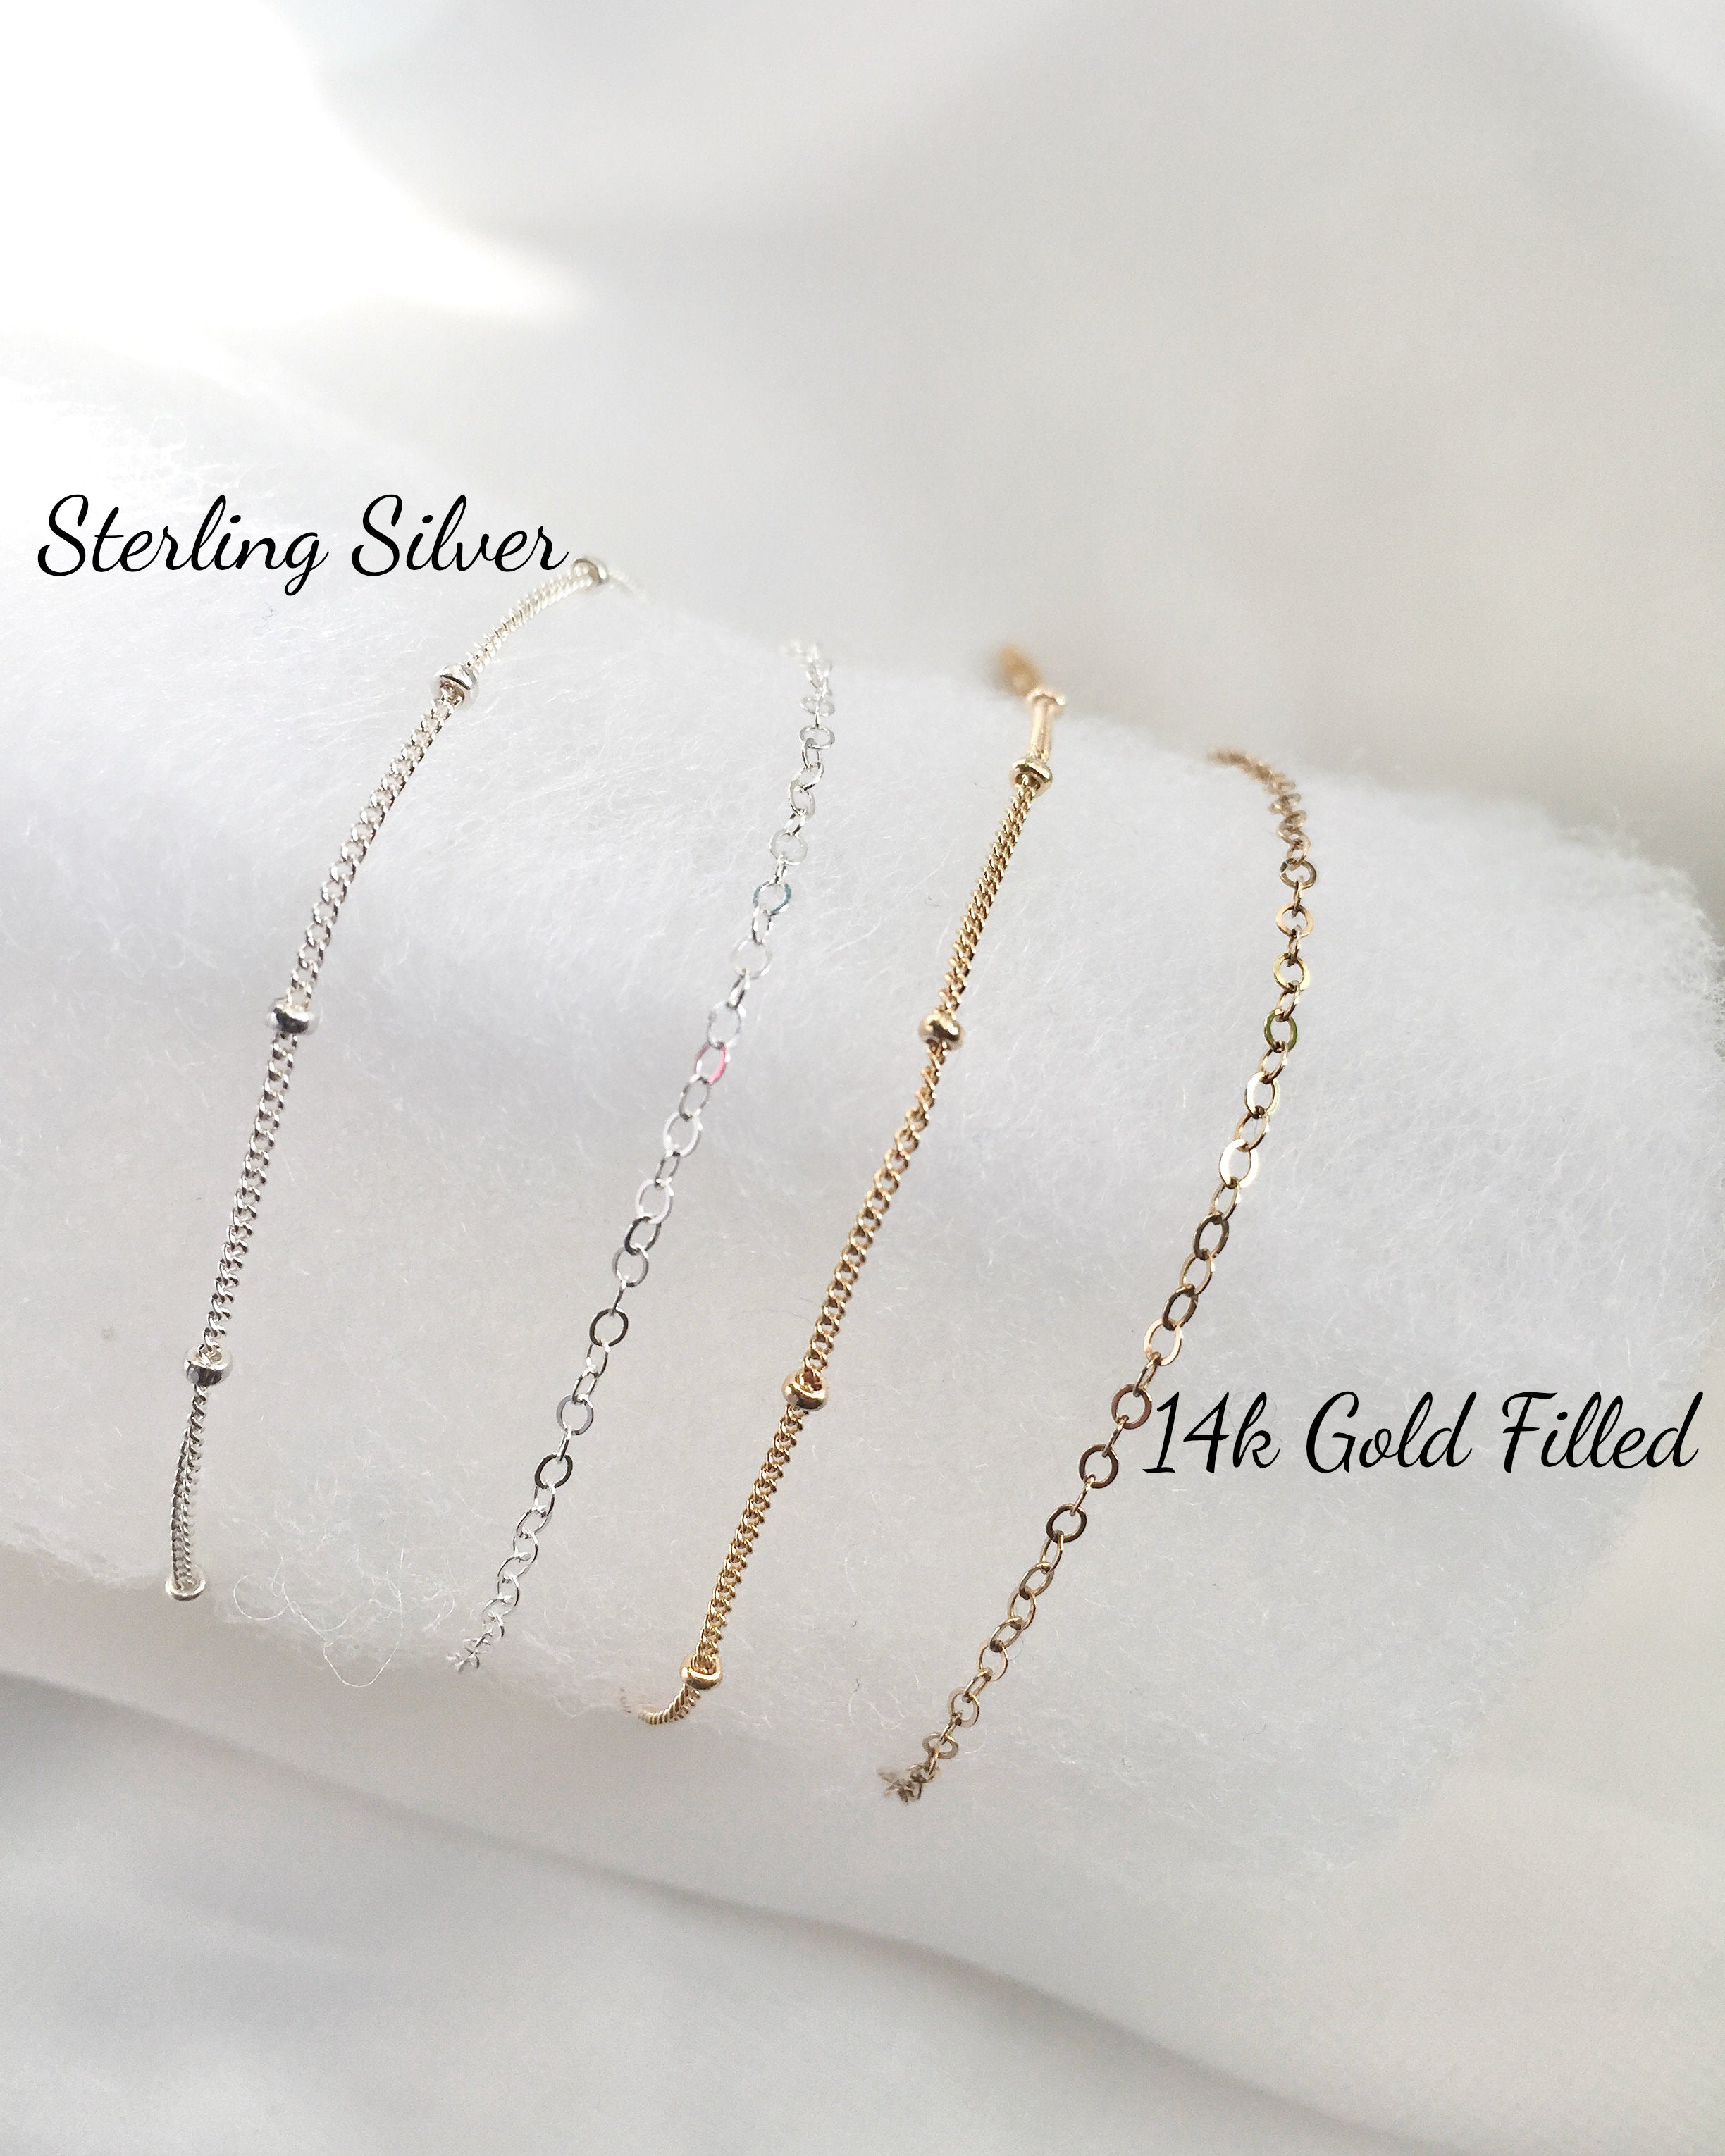 Dainty Everyday Bracelets in Gold Filled or Sterling Silver | IB Jewelry